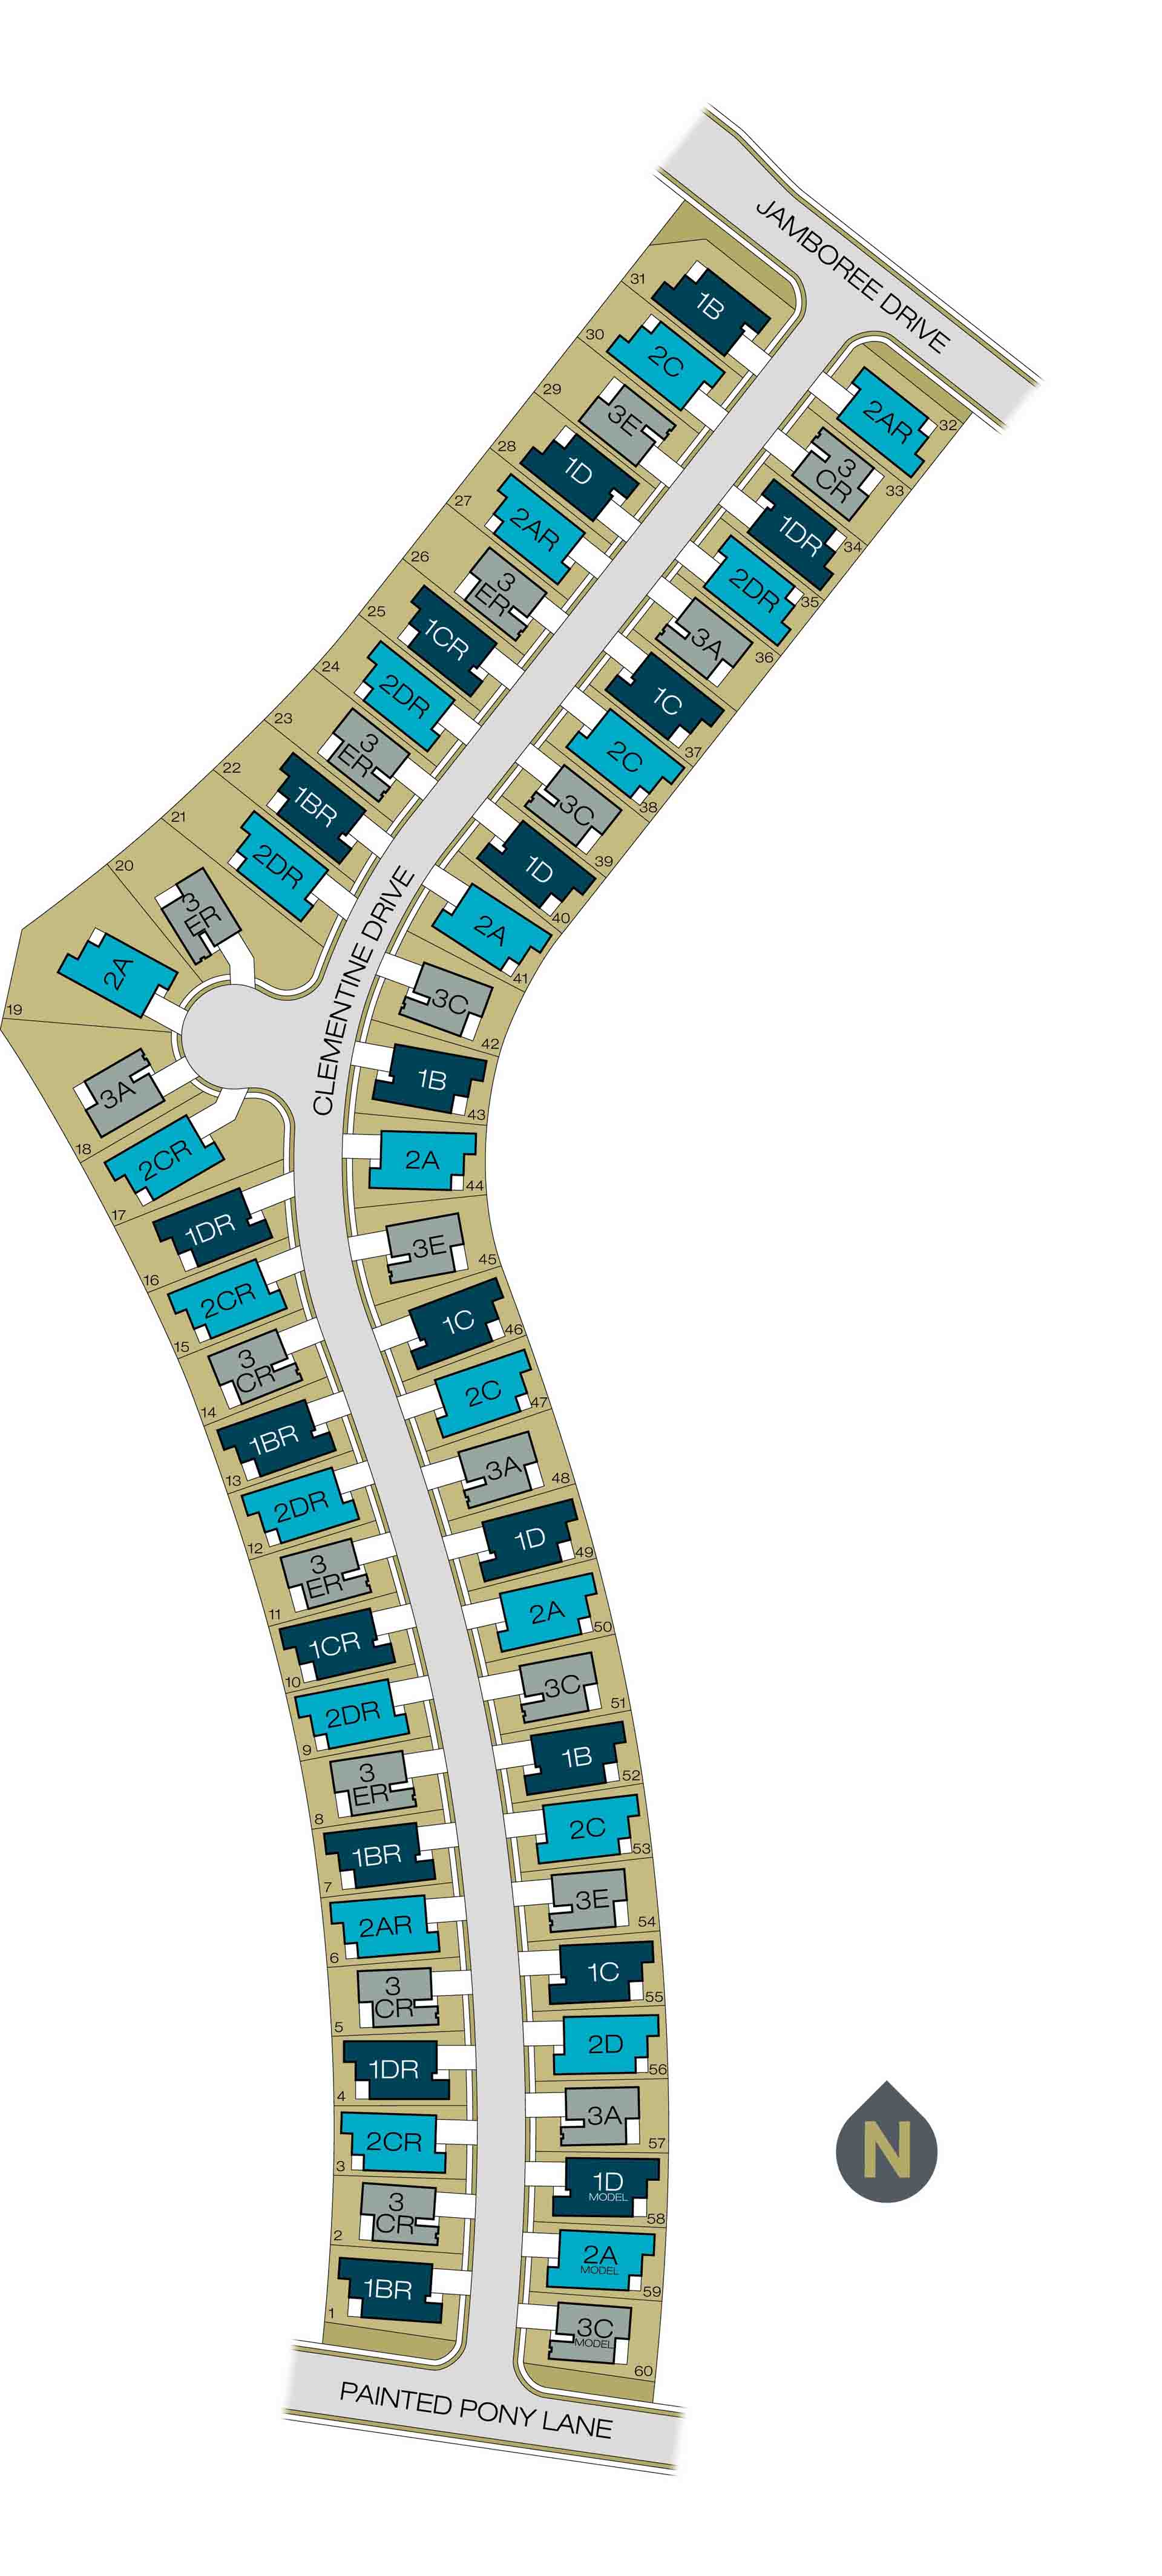 Park View Site Plan